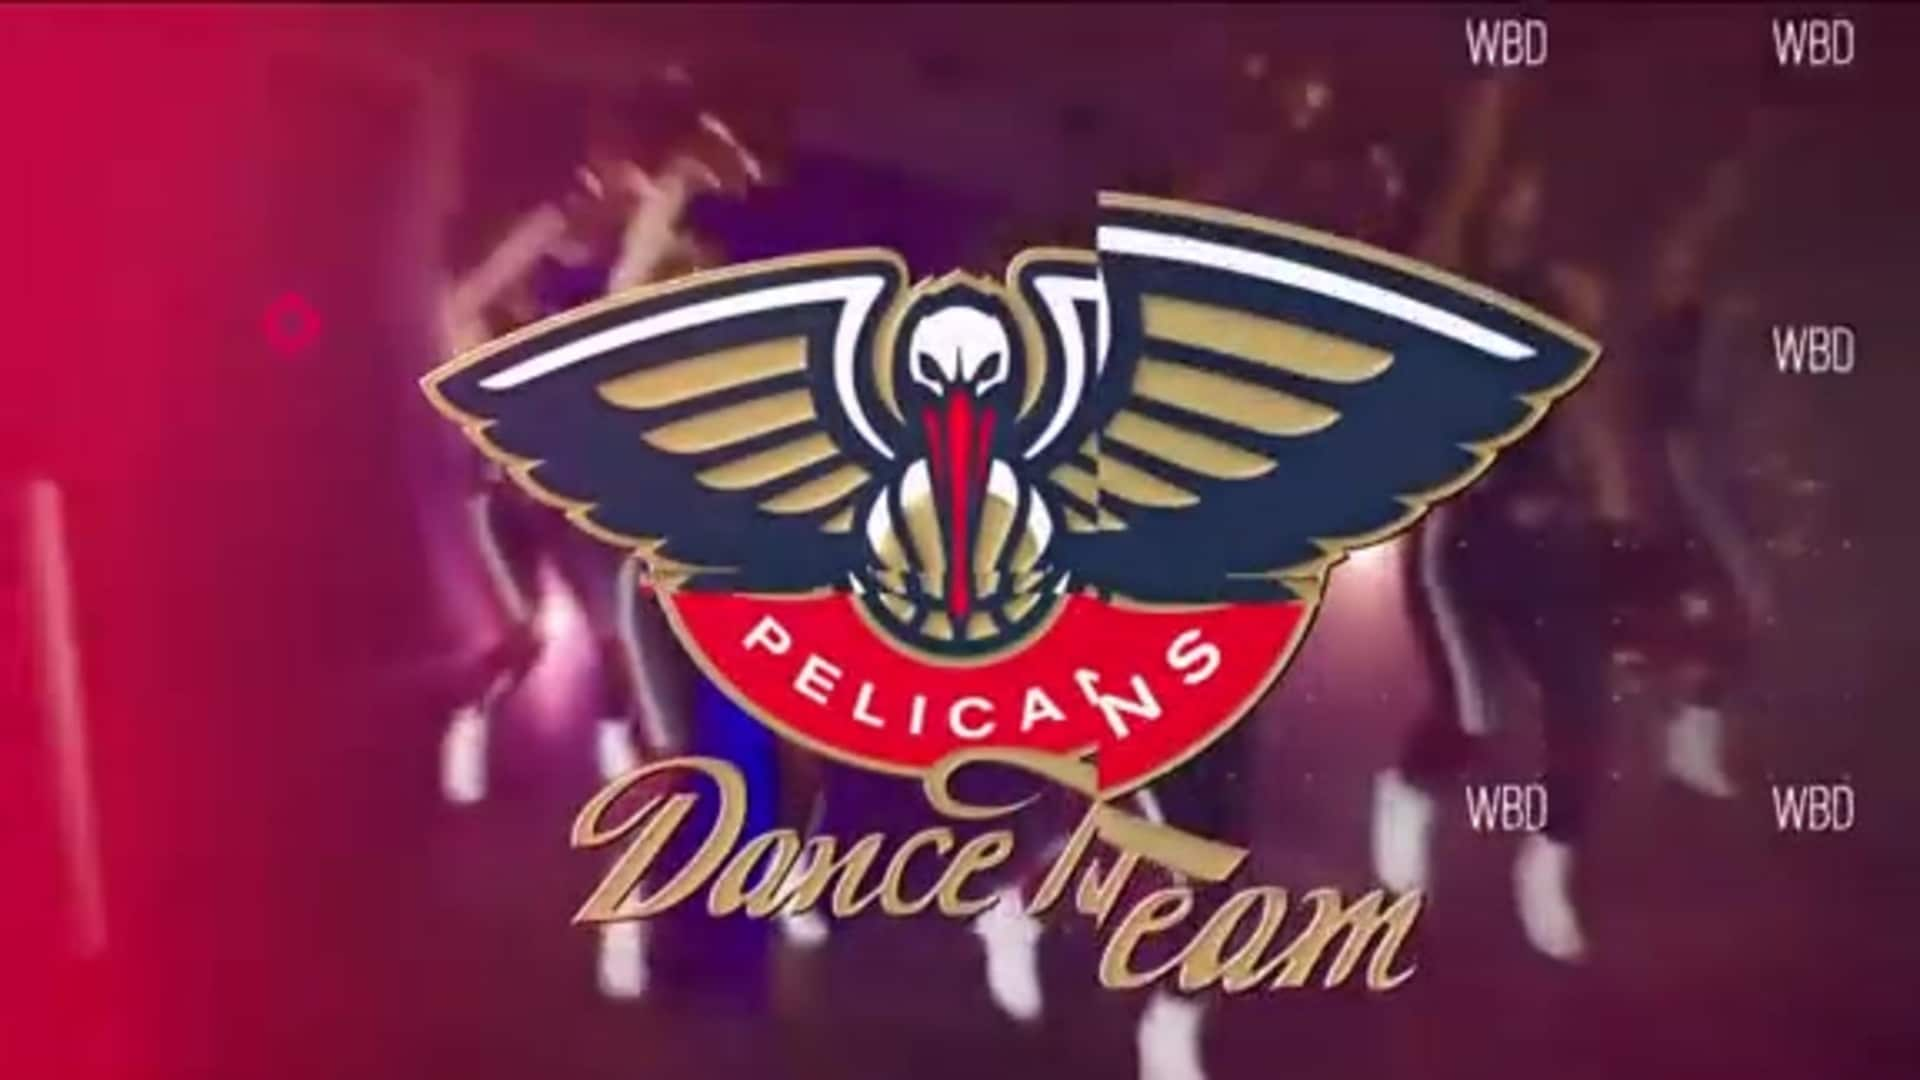 Entertainment: Pelicans Dance Team 3rd quarter performance - December 15 vs. Orlando Magic